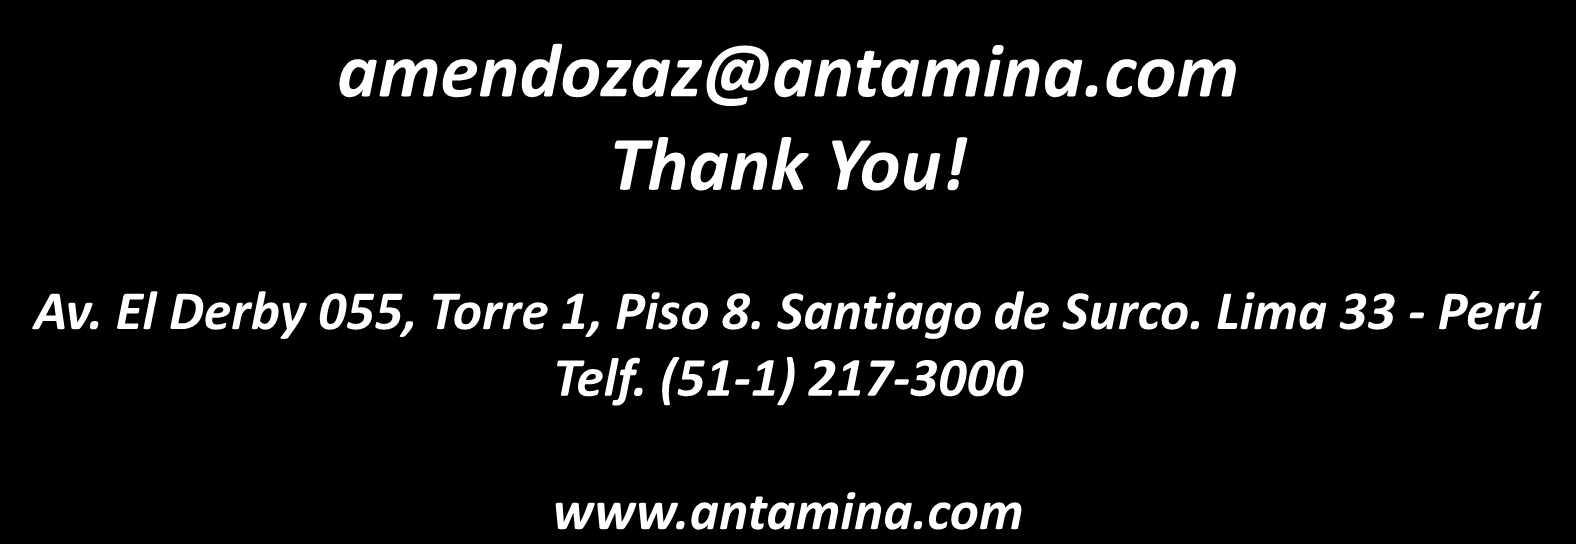 amendozaz@antamina.com Thank You!